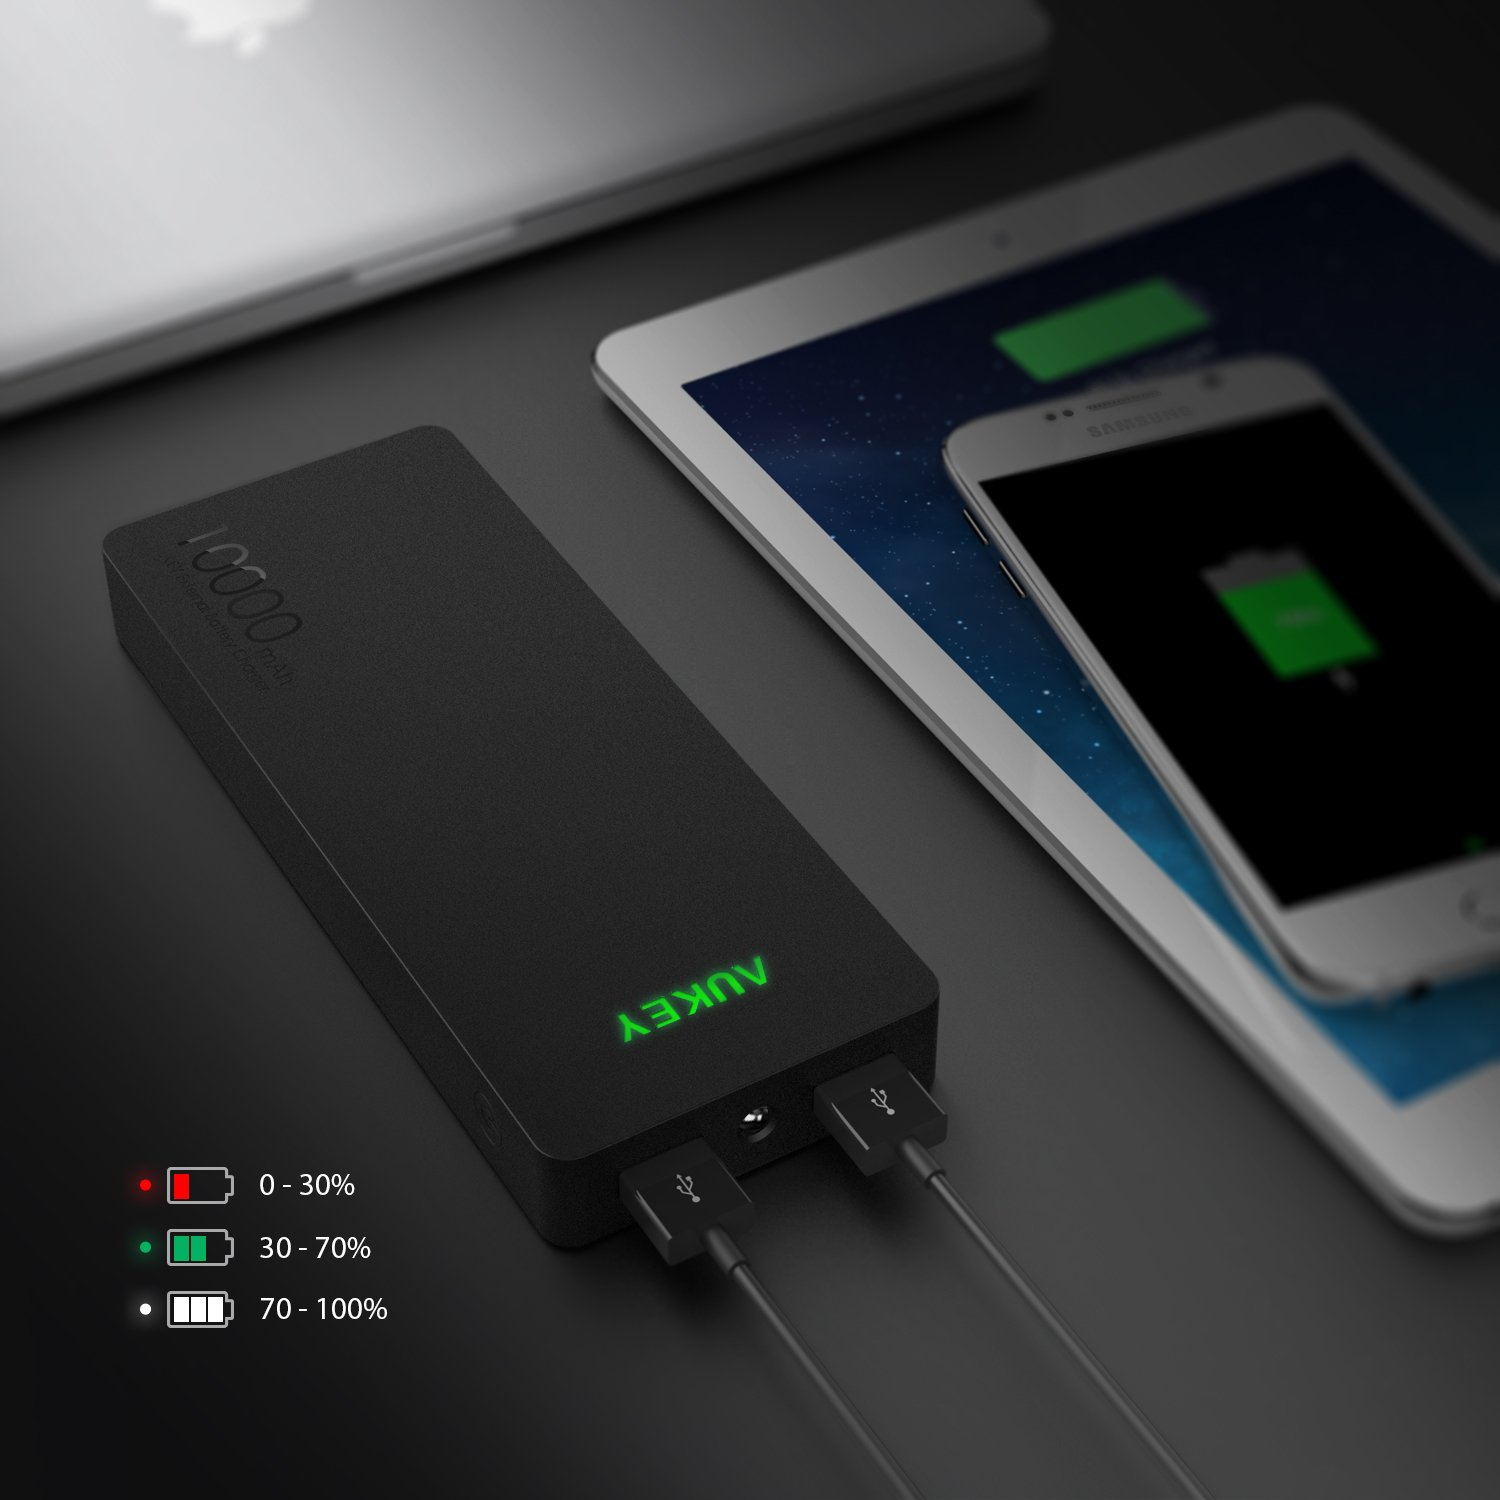 Aukey Quick Charge 30 Mobile Phone Charger Usb Desktop Pa T9 Turbo With Amazoncom 10000mah Portable Fast Qualcomm 20 For Smart Phones Black Cell Accessories